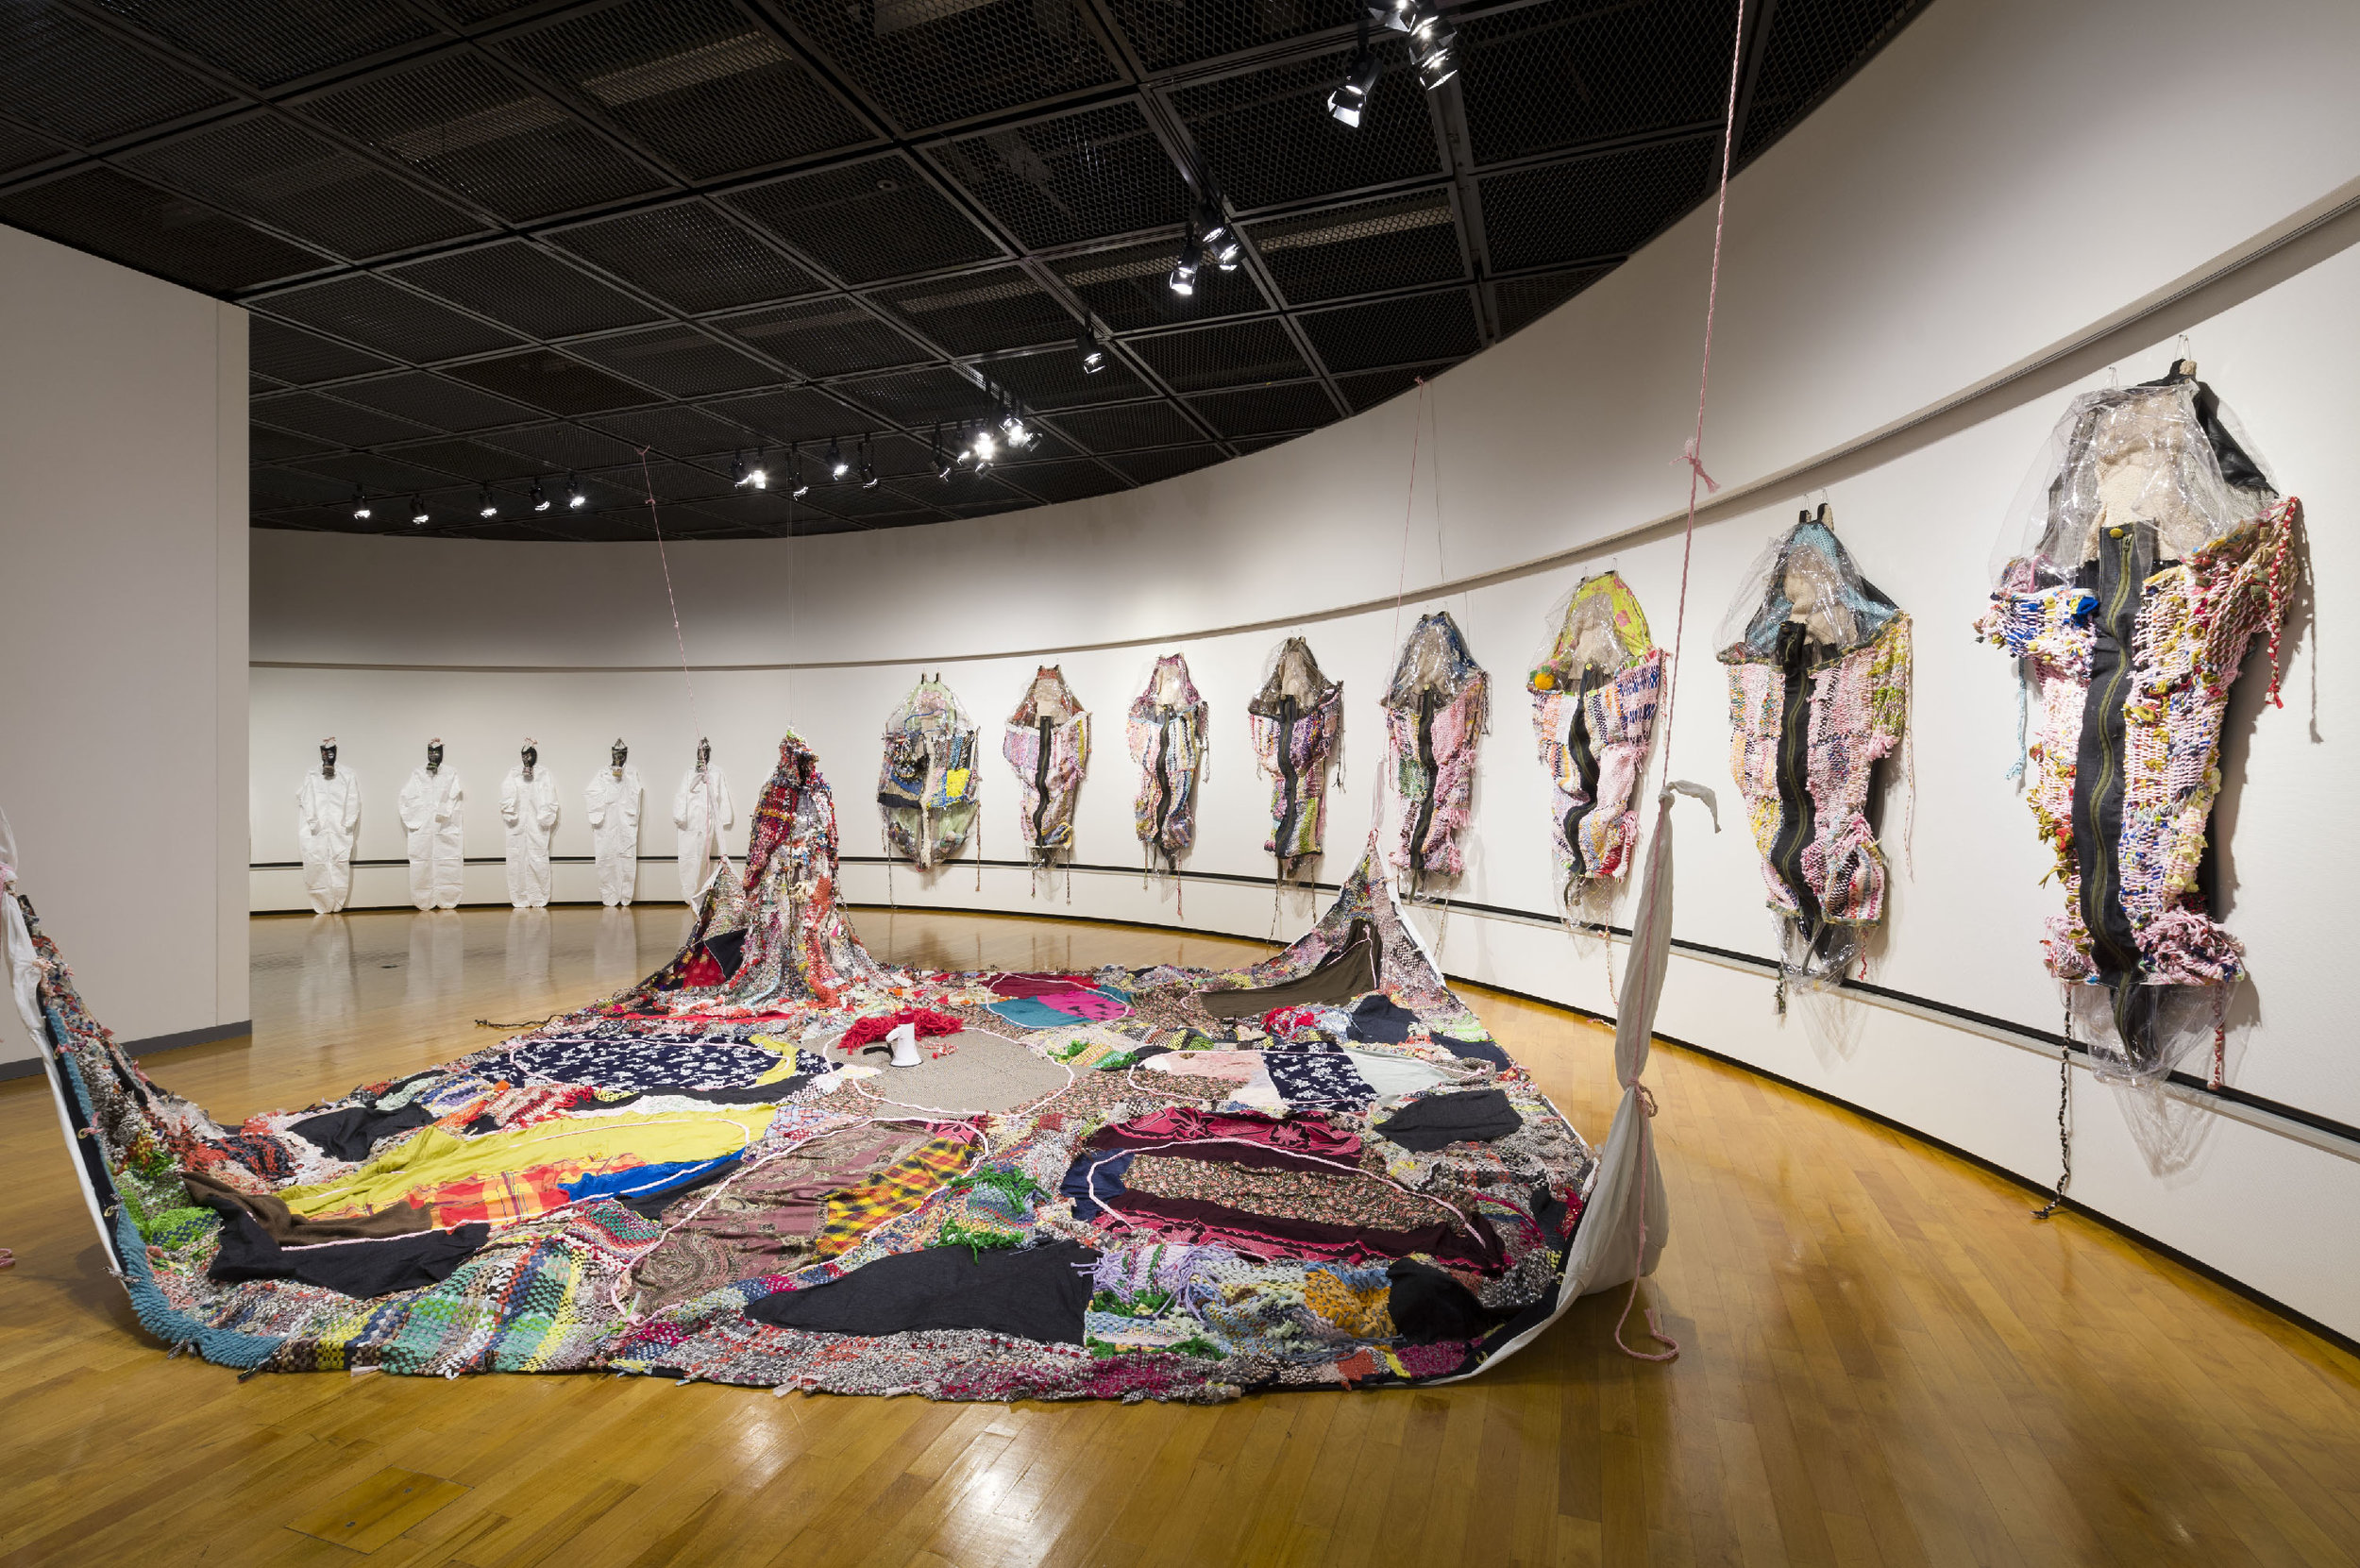 Runningaway Furoshiki , Mixed media installation, Dimensions variable, 2013  Photographed by Hideto Nagatsuka